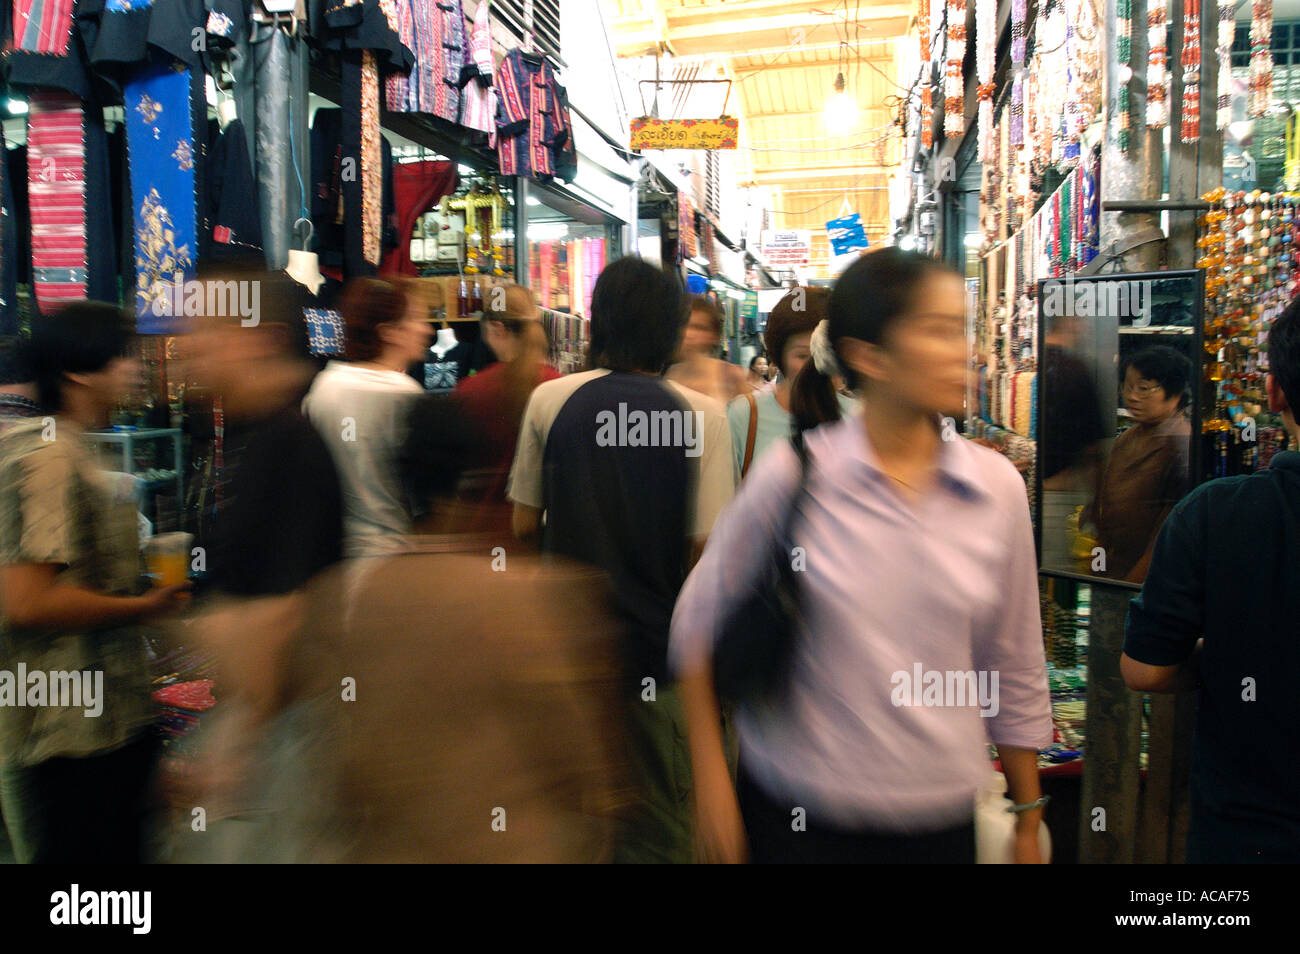 Busy alleyway between shops in Chatuchak Market in Bangkok Thailand - Stock Image